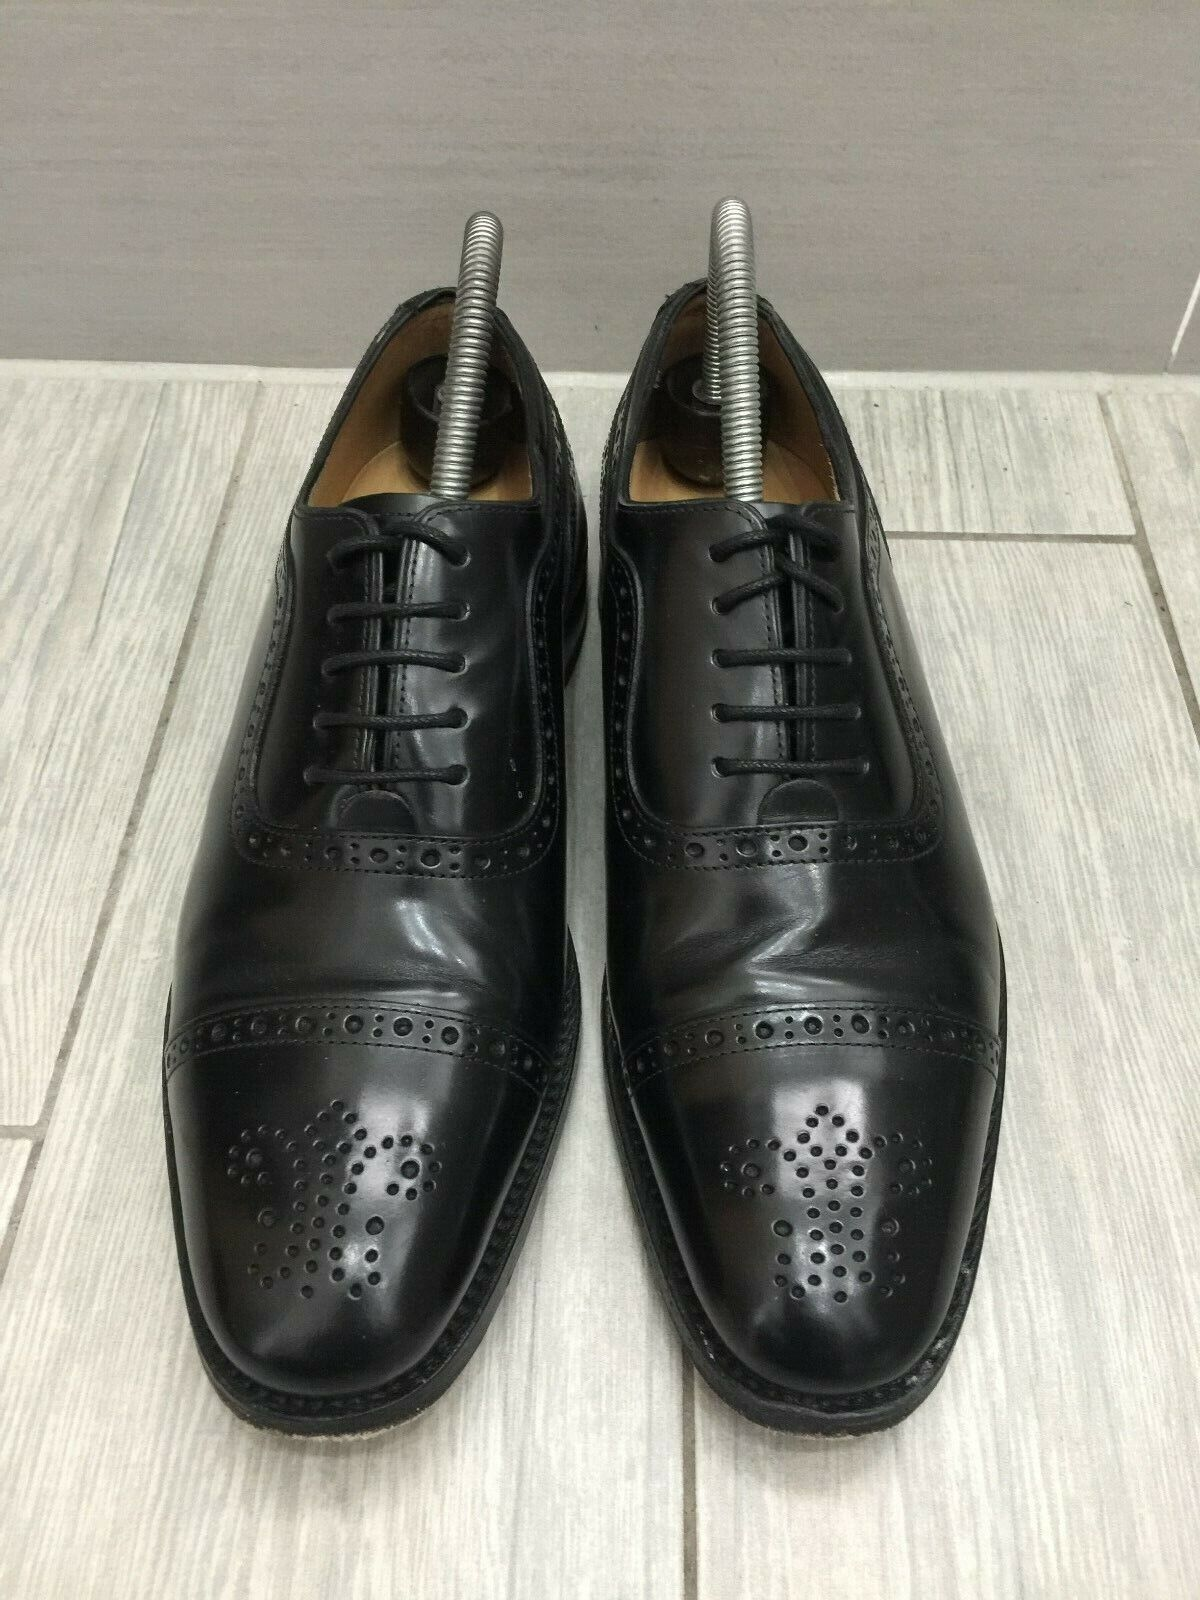 schwarz ALL LEATHER CHARLES TYRWHITT GOODYEAR WELTED OXFORD BROGUES, UK 6.5